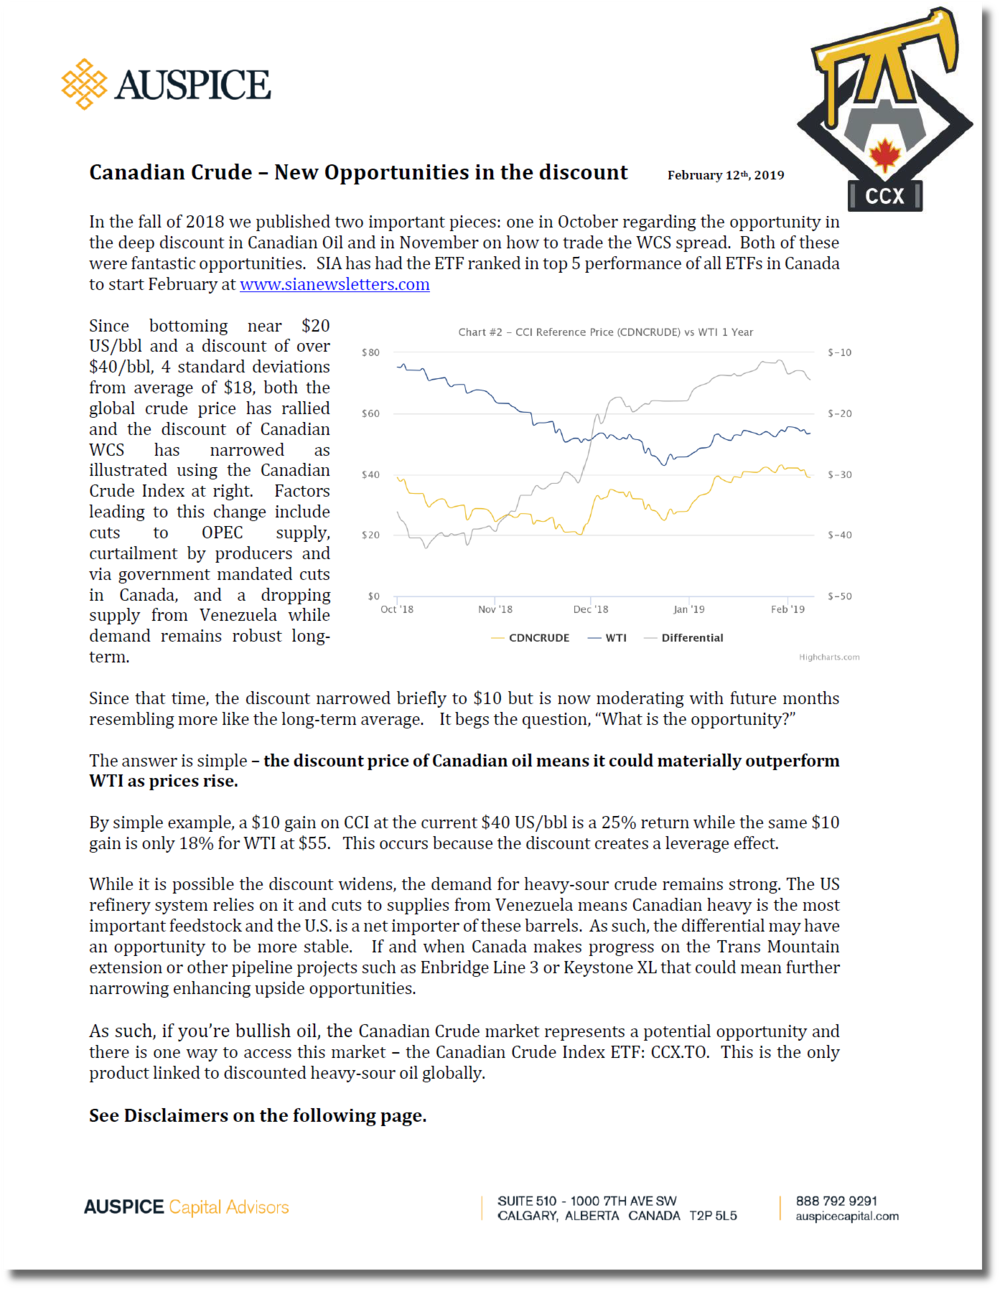 Canadian Crude - Opportunities in the discount